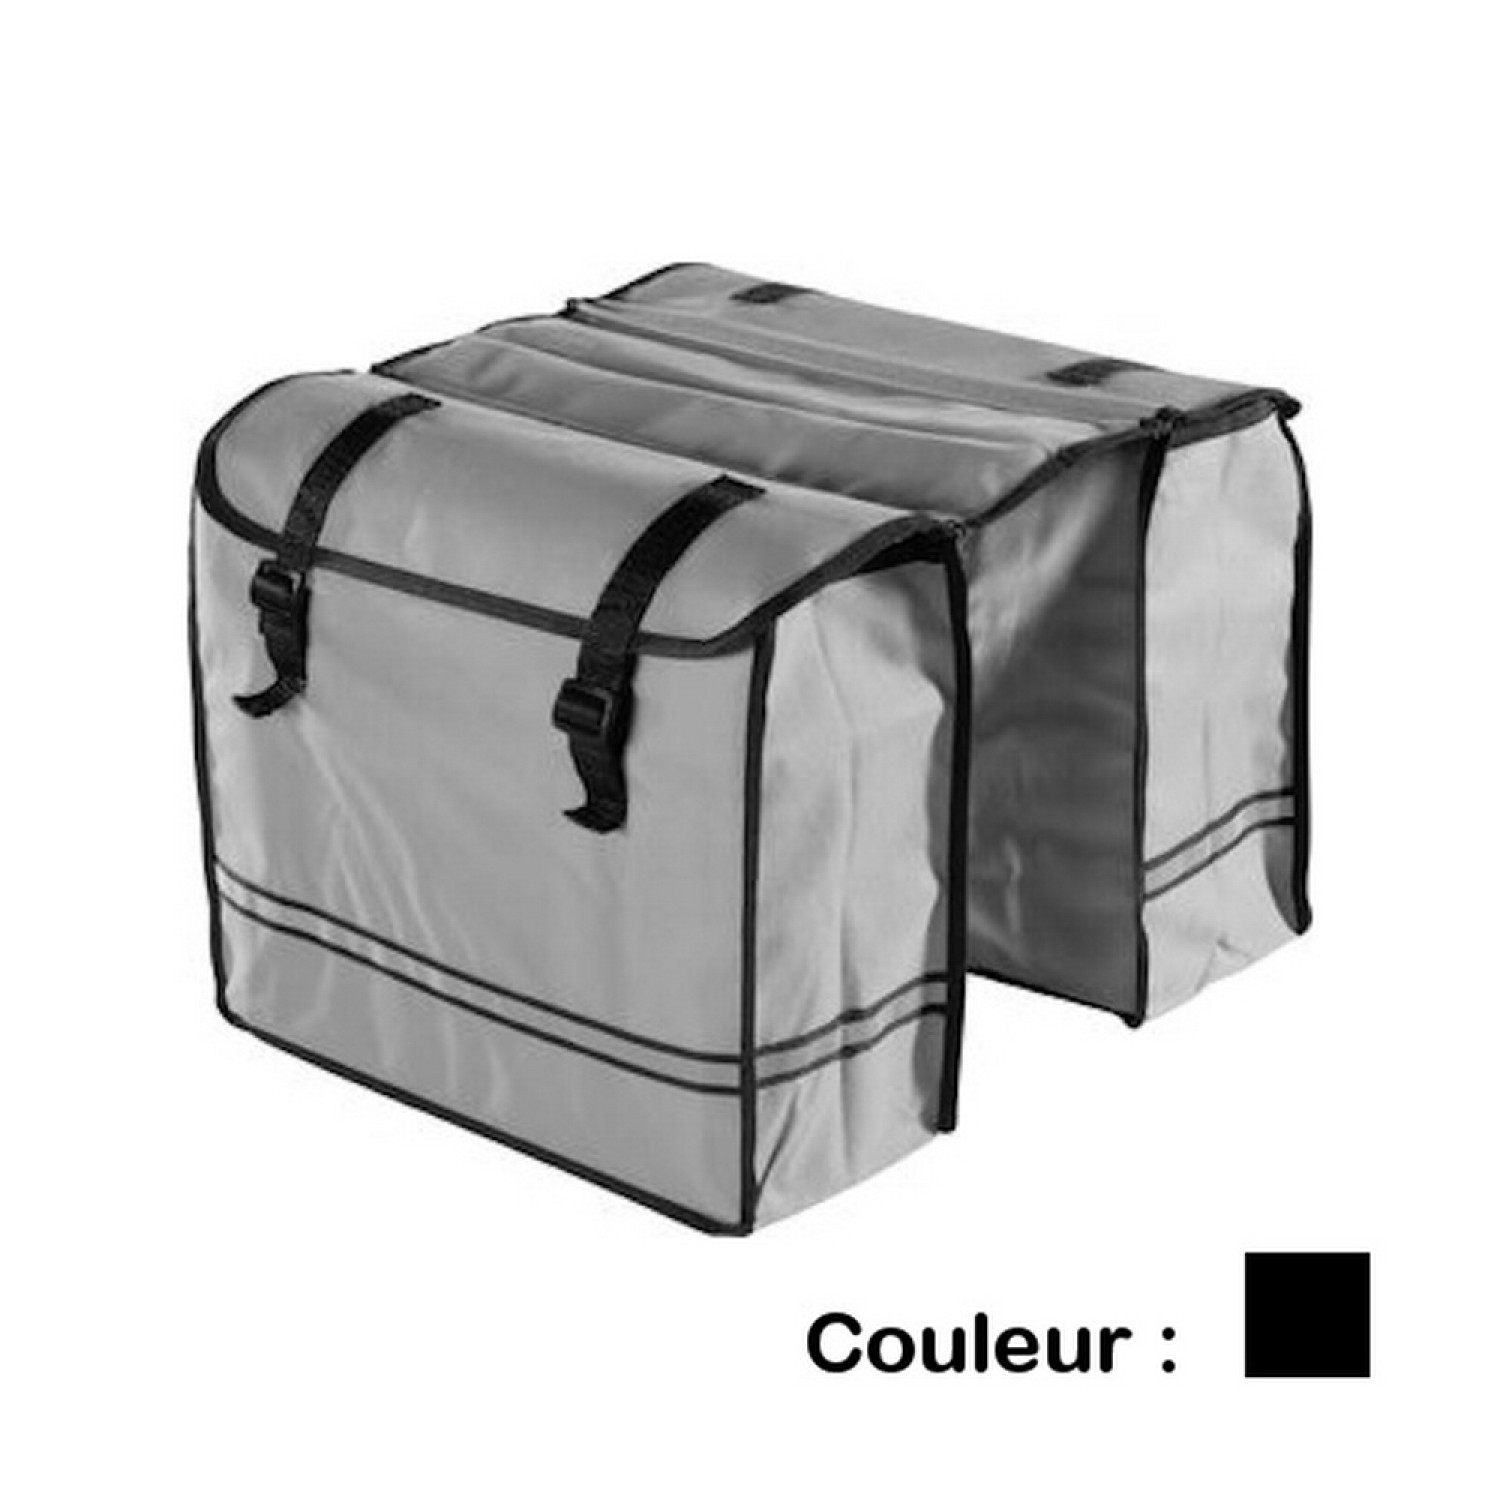 Sacoche vélo - Bicycle Gear - Porte bagage 30L - Noir